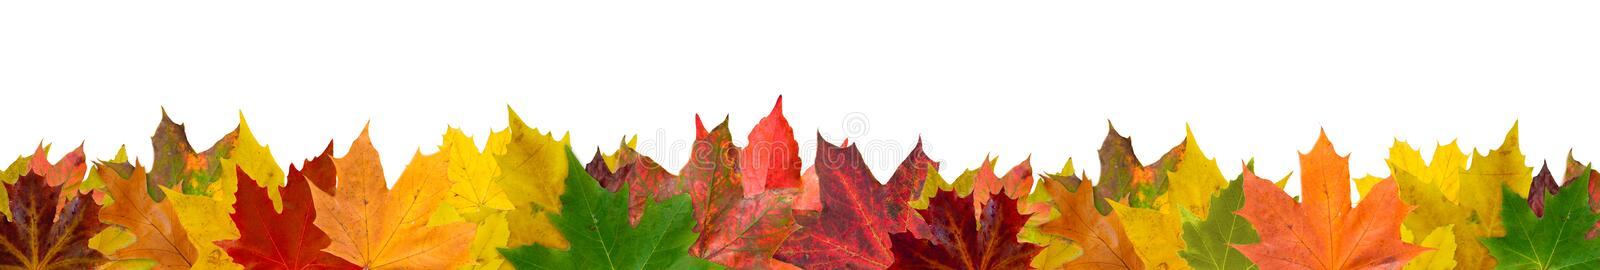 Autumn Leaves libre illustration